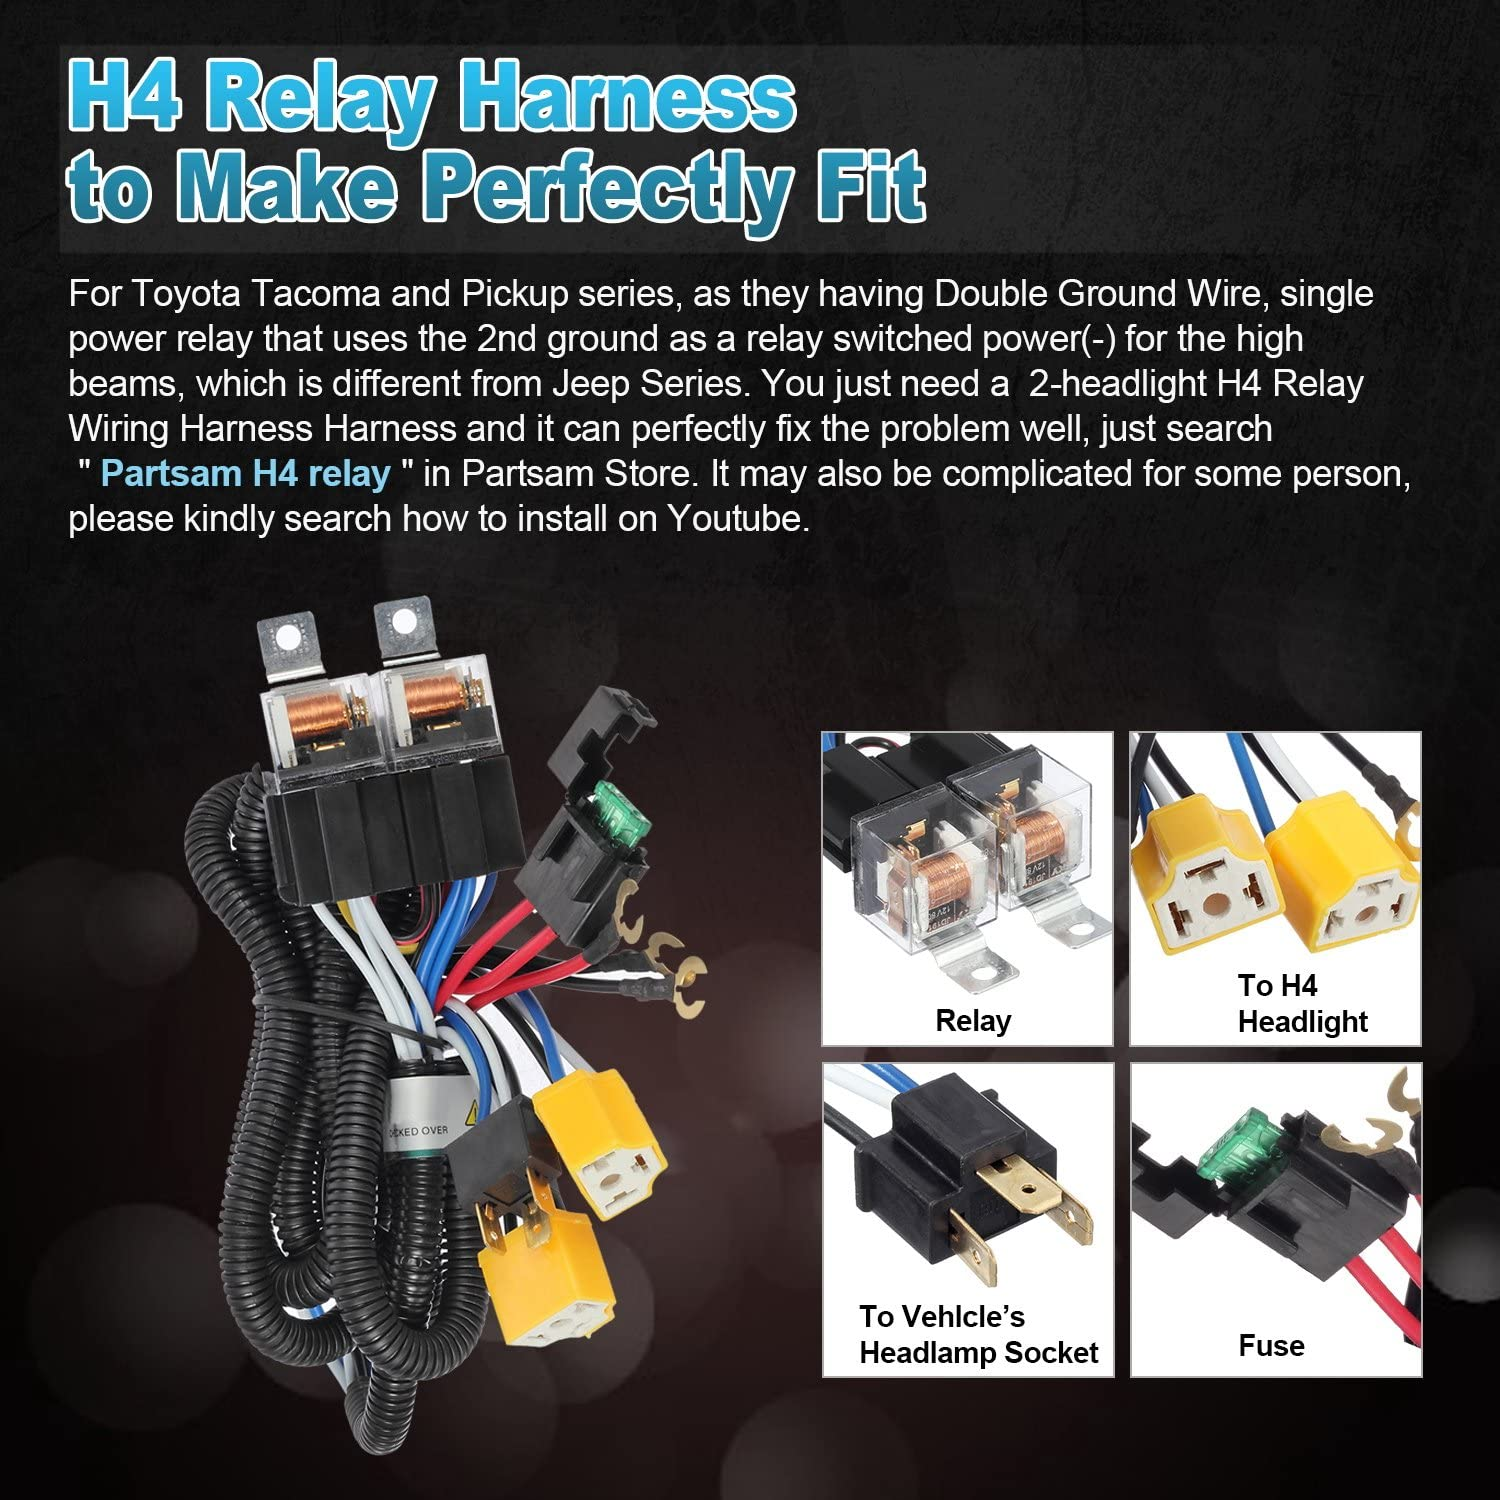 Jeep Yj Headlight Relay Wiring - Wiring Diagram 500 Jeep Tj Headlight Wiring Harness Upgrade on jeep tj headlight bulb, jeep tj headlight relay, jeep tj headlight conversion kit,